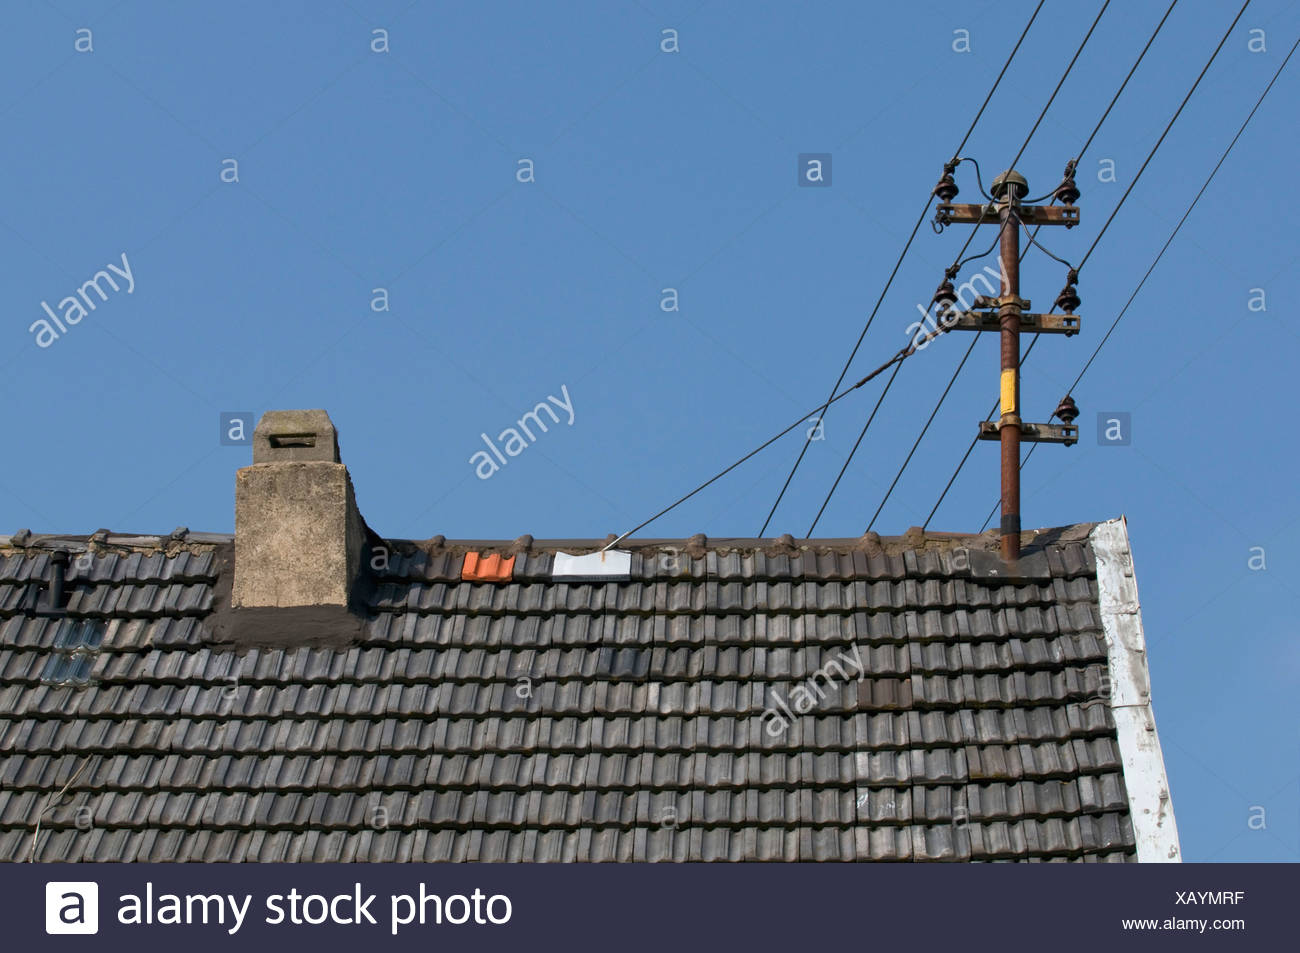 Old power lines with ceramic insulators on roof - Stock Image